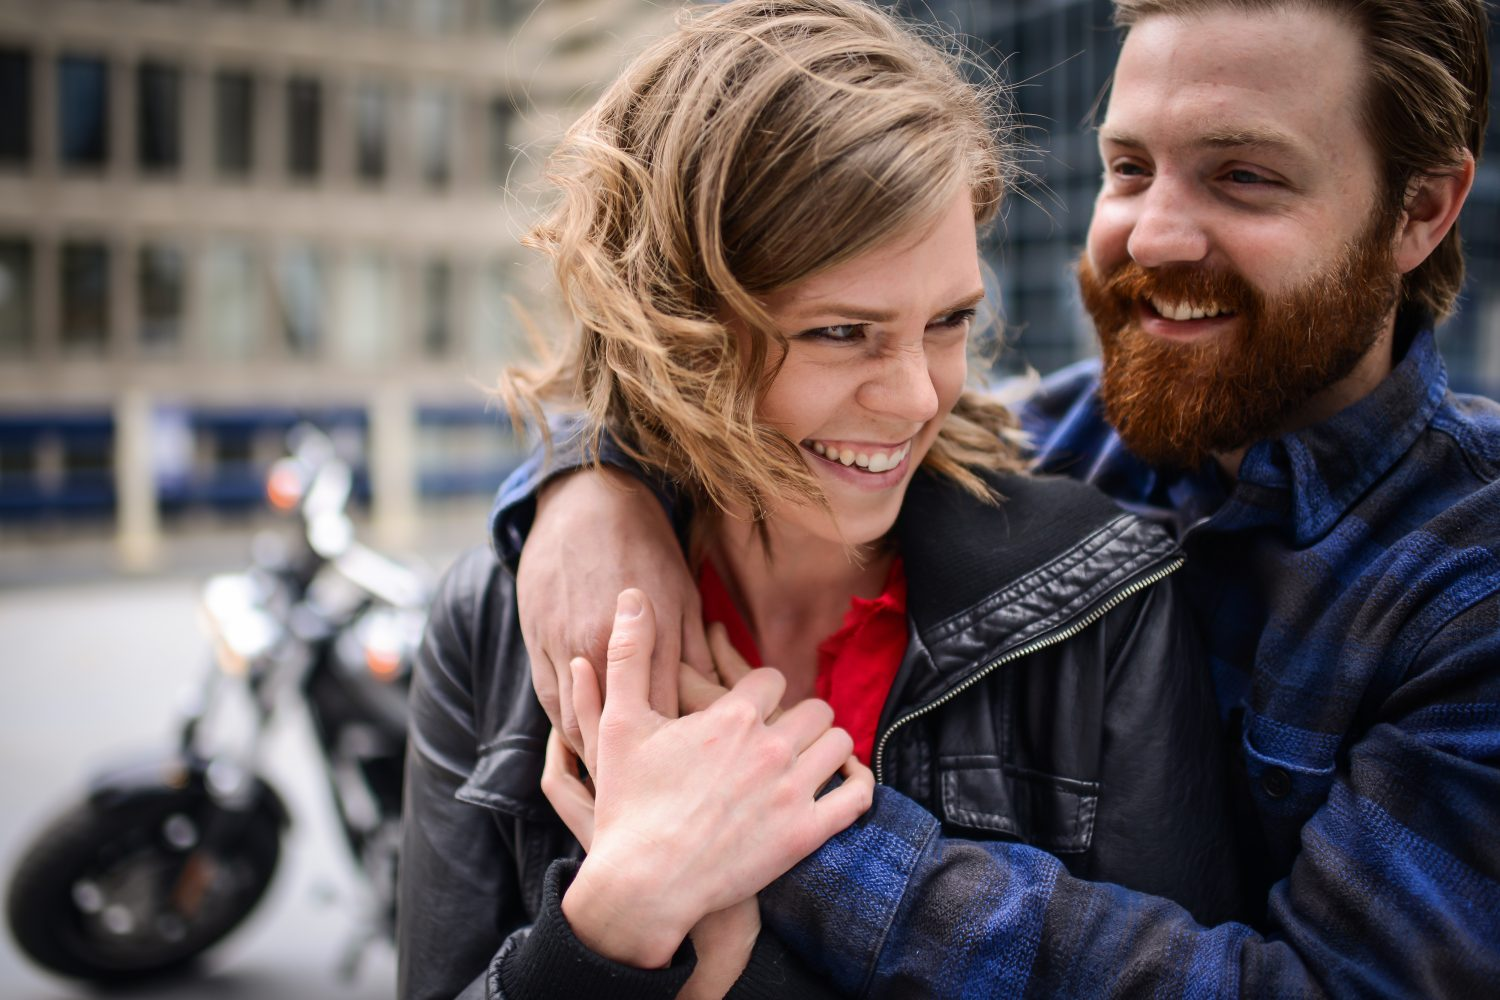 Downtown Calgary Engagement session with motorcycle, leather jackets and an awesome couple |3Haus Photographics